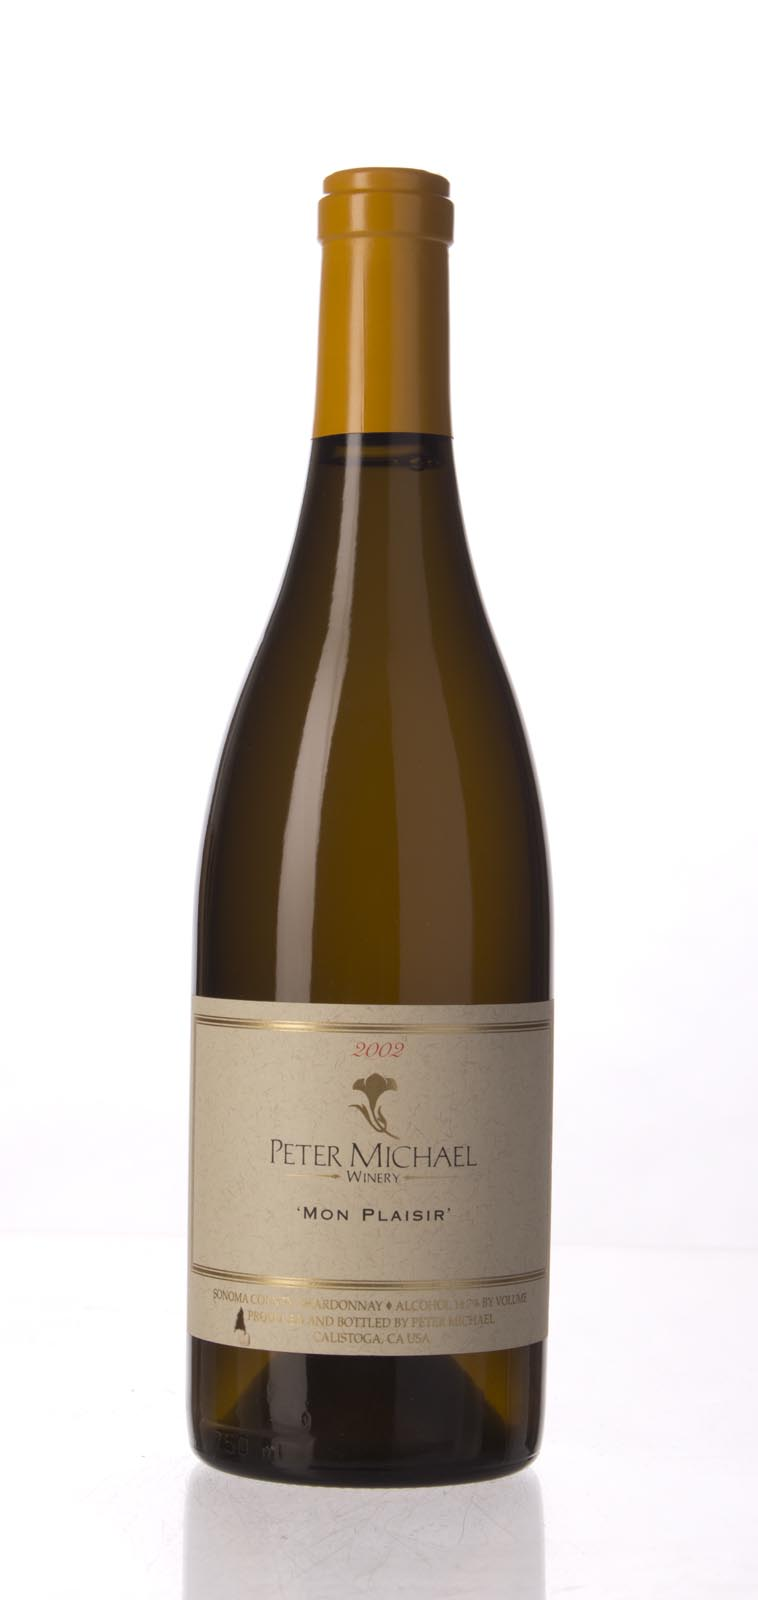 Peter Michael Winery Chardonnay Mon Plaisir 2002, 750mL (WA92-94, WS95) from The BPW - Merchants of rare and fine wines.